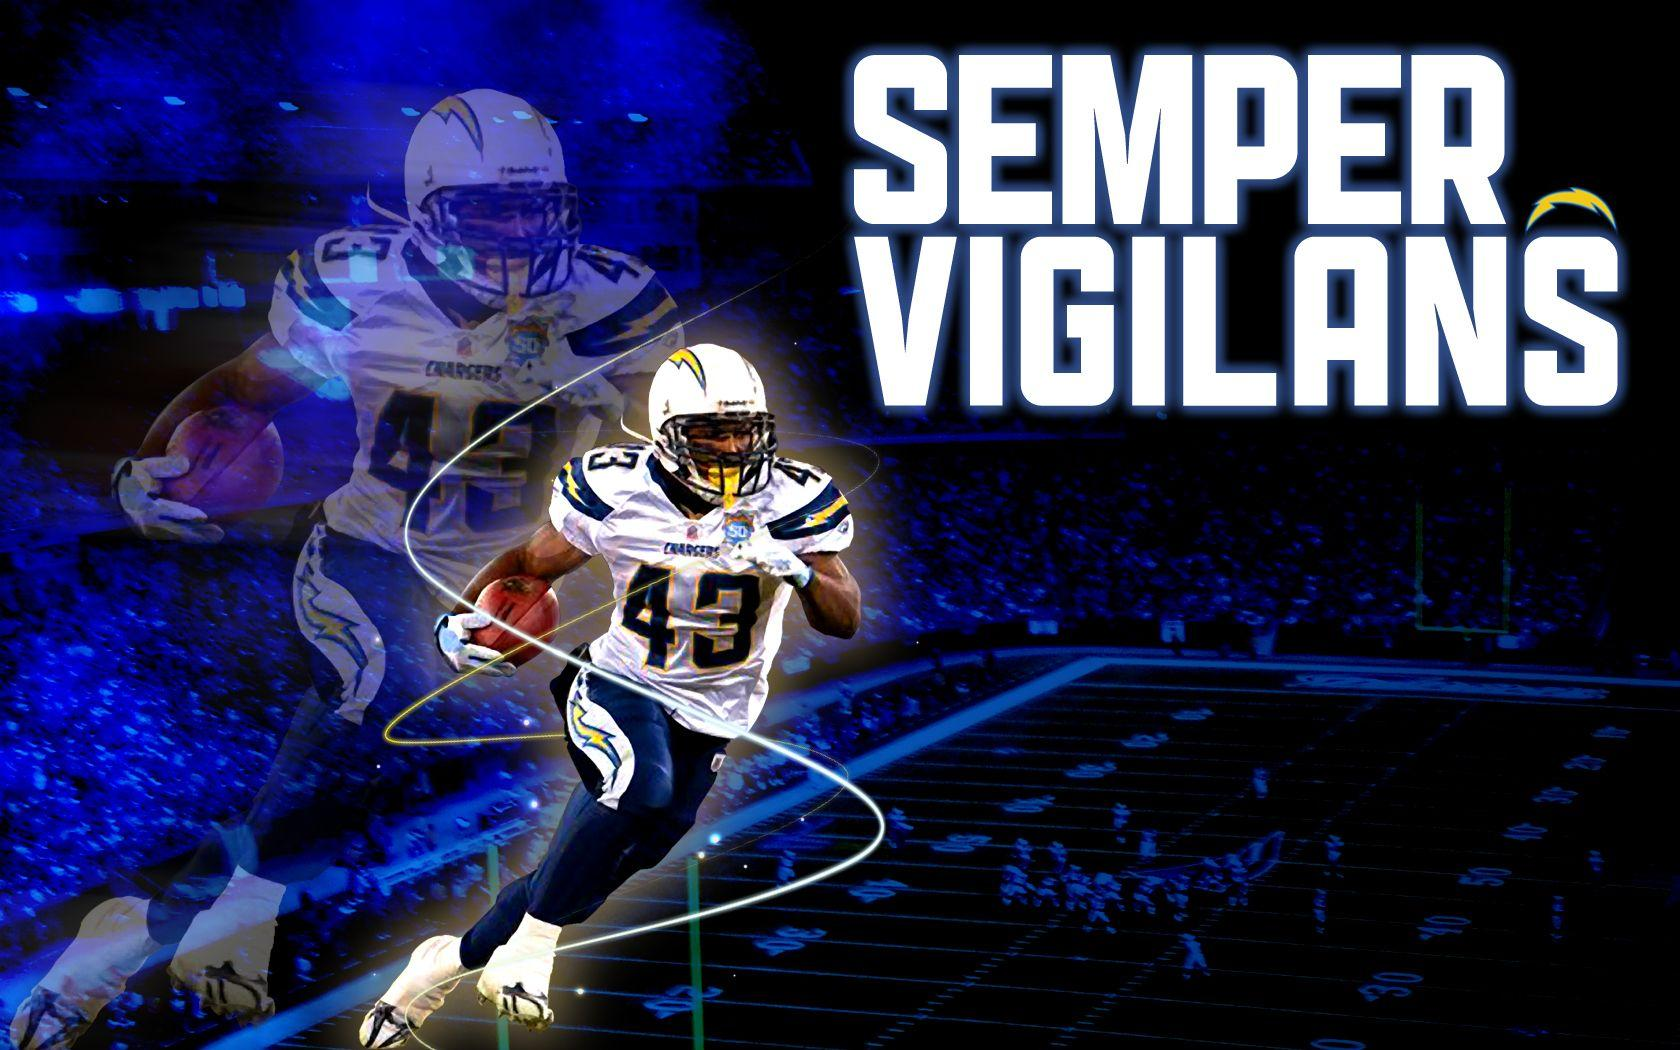 2 San Diego Chargers Backgrounds For Your Desktop | Photo Into ...